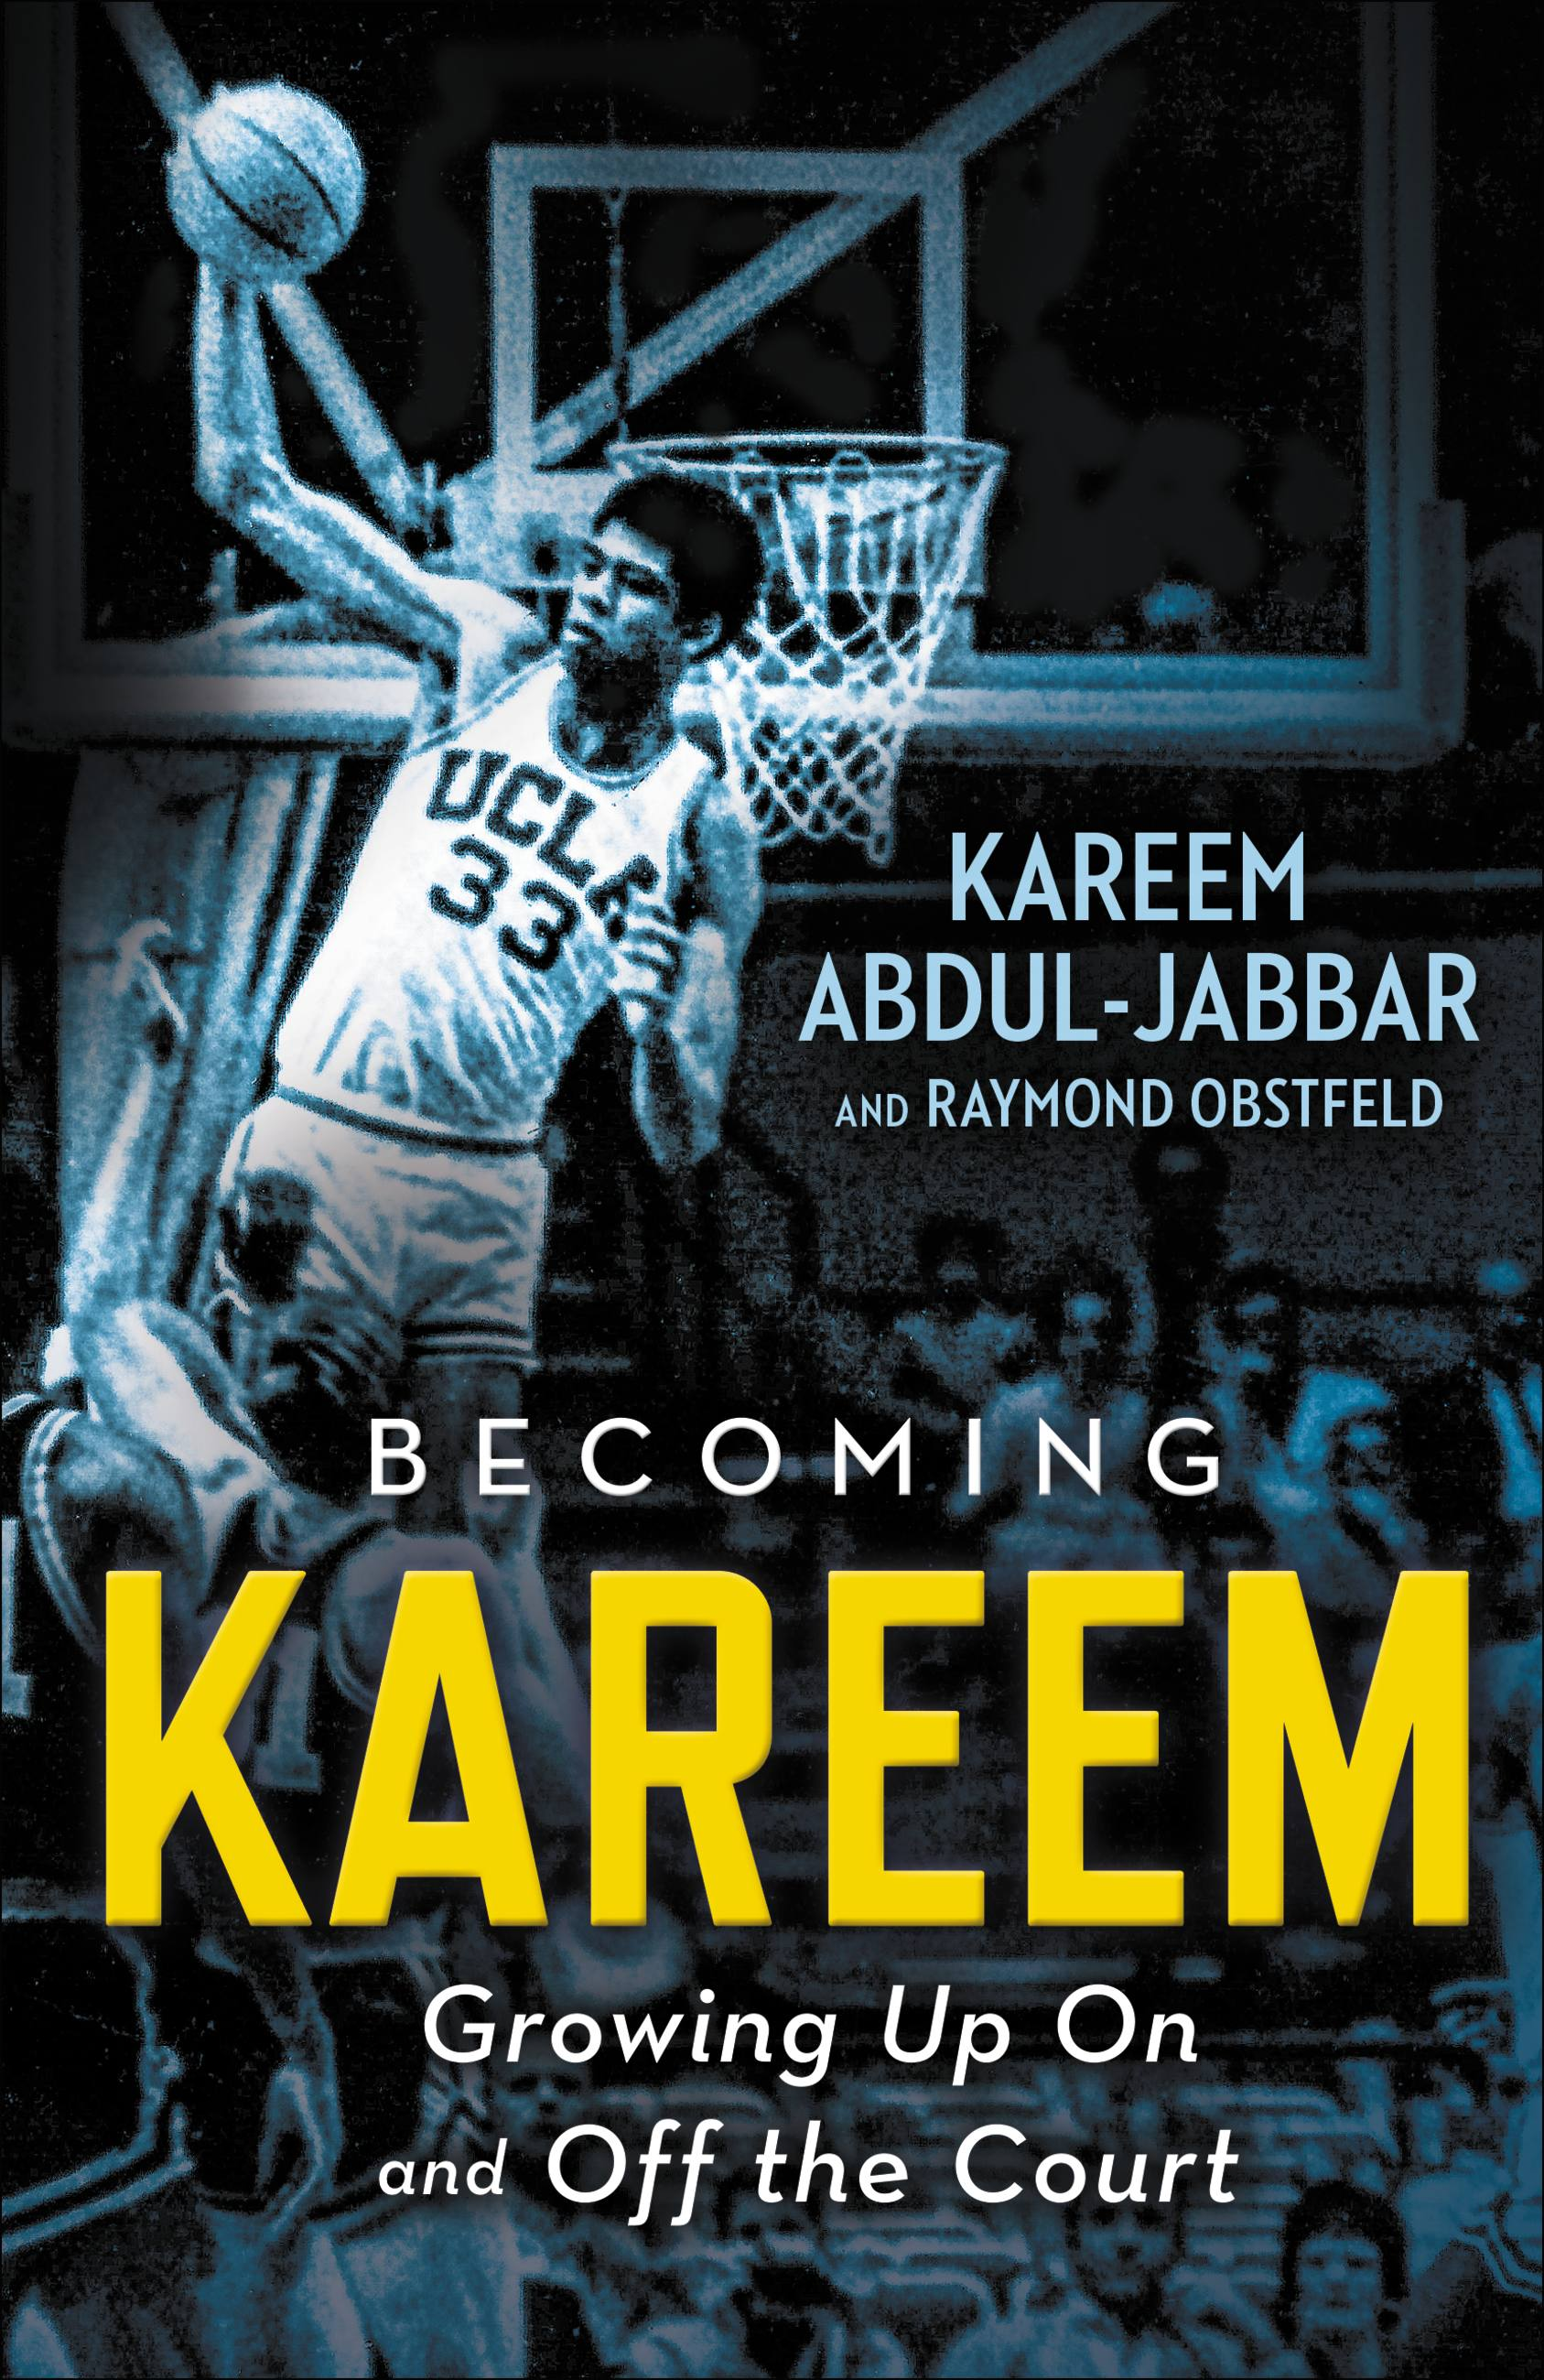 Becoming Kareem Growing Up On and Off the Court